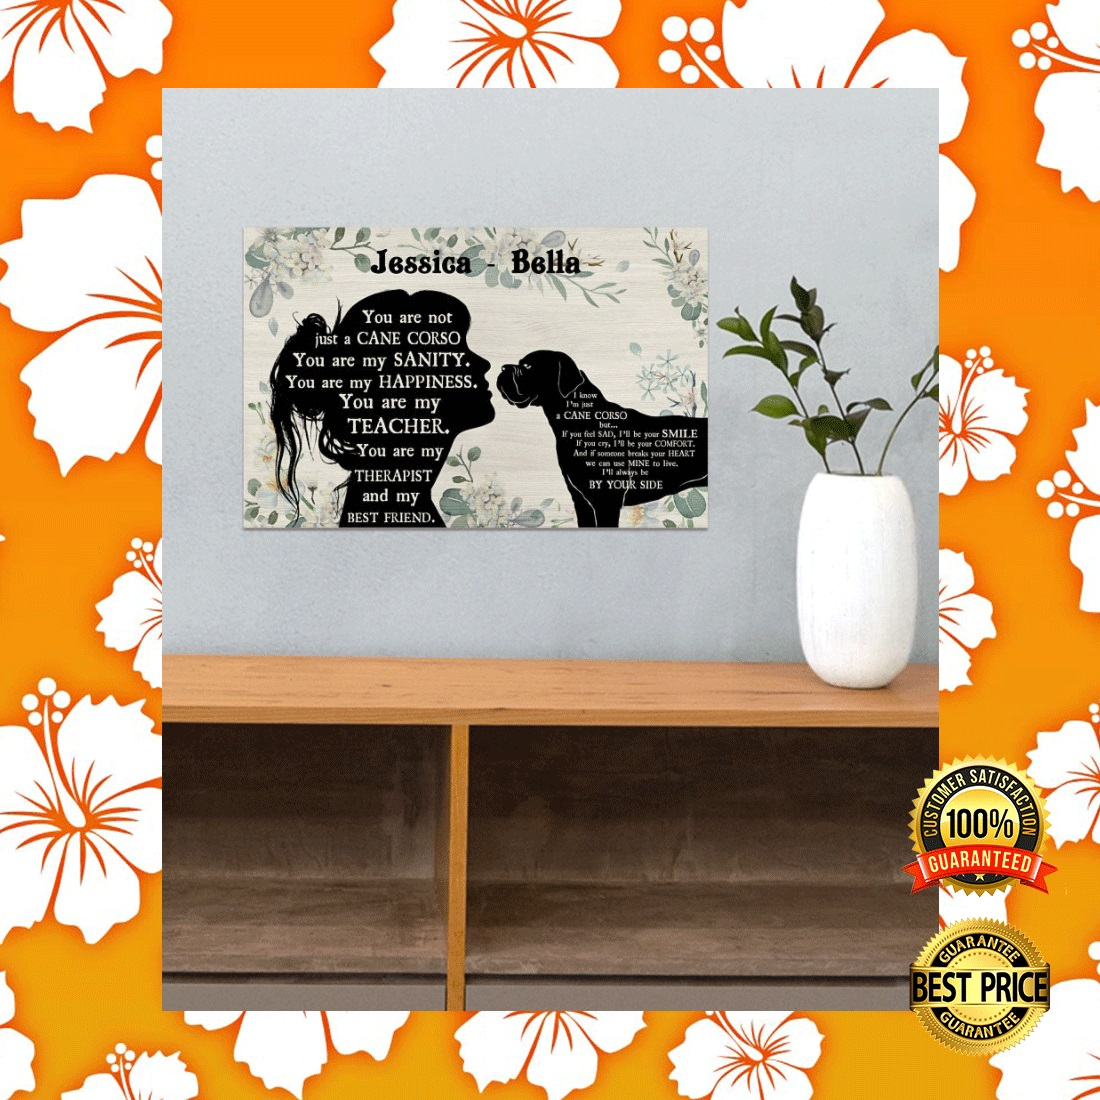 PERSONALIZED GIRL AND CANE CORSE YOU ARE NOT JUST A CANE CORSE POSTER 4